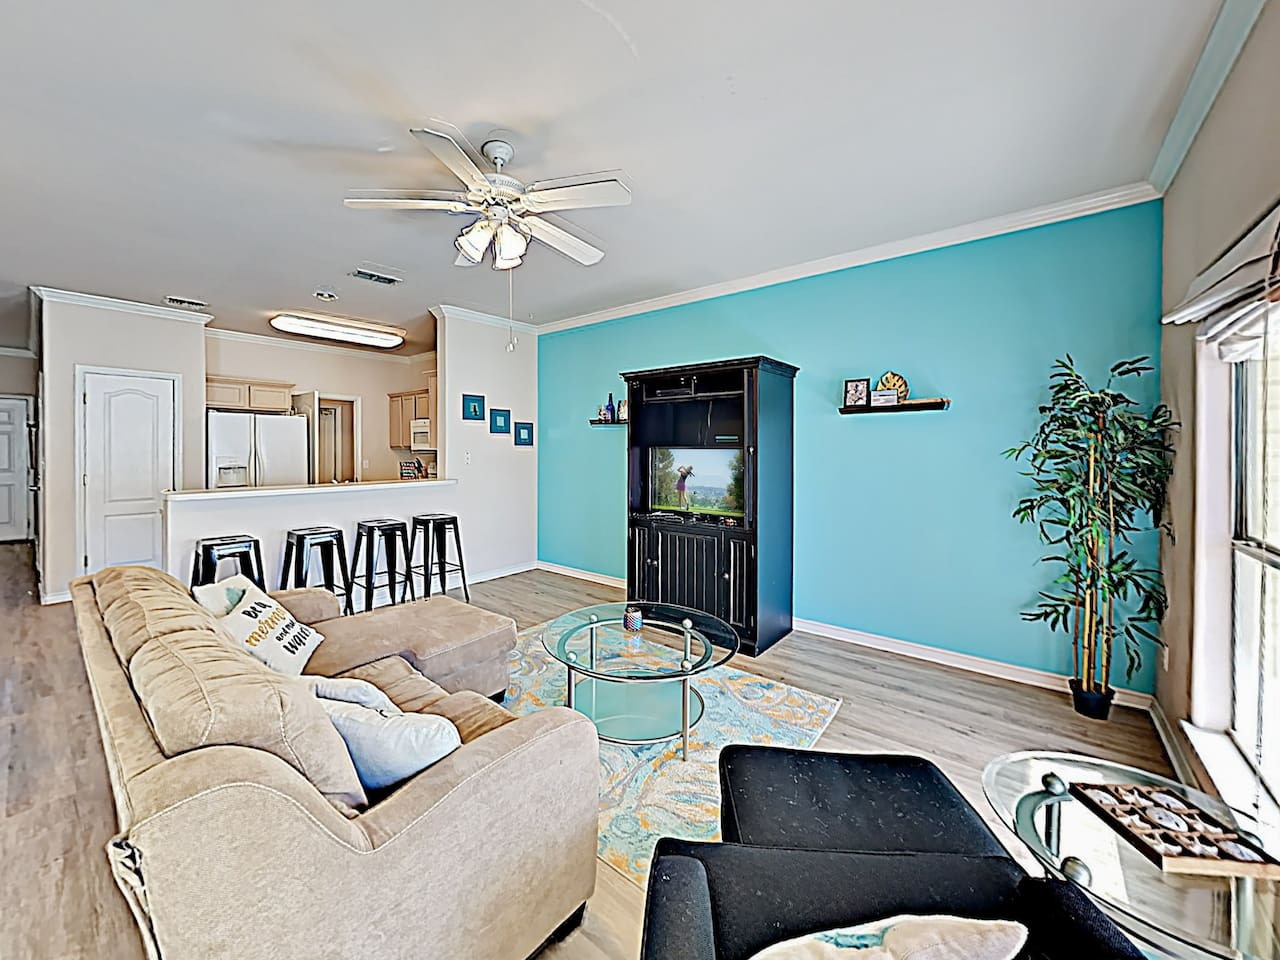 Welcome to Corpus Christi! This townhome is professionally managed by TurnKey Vacation Rentals.